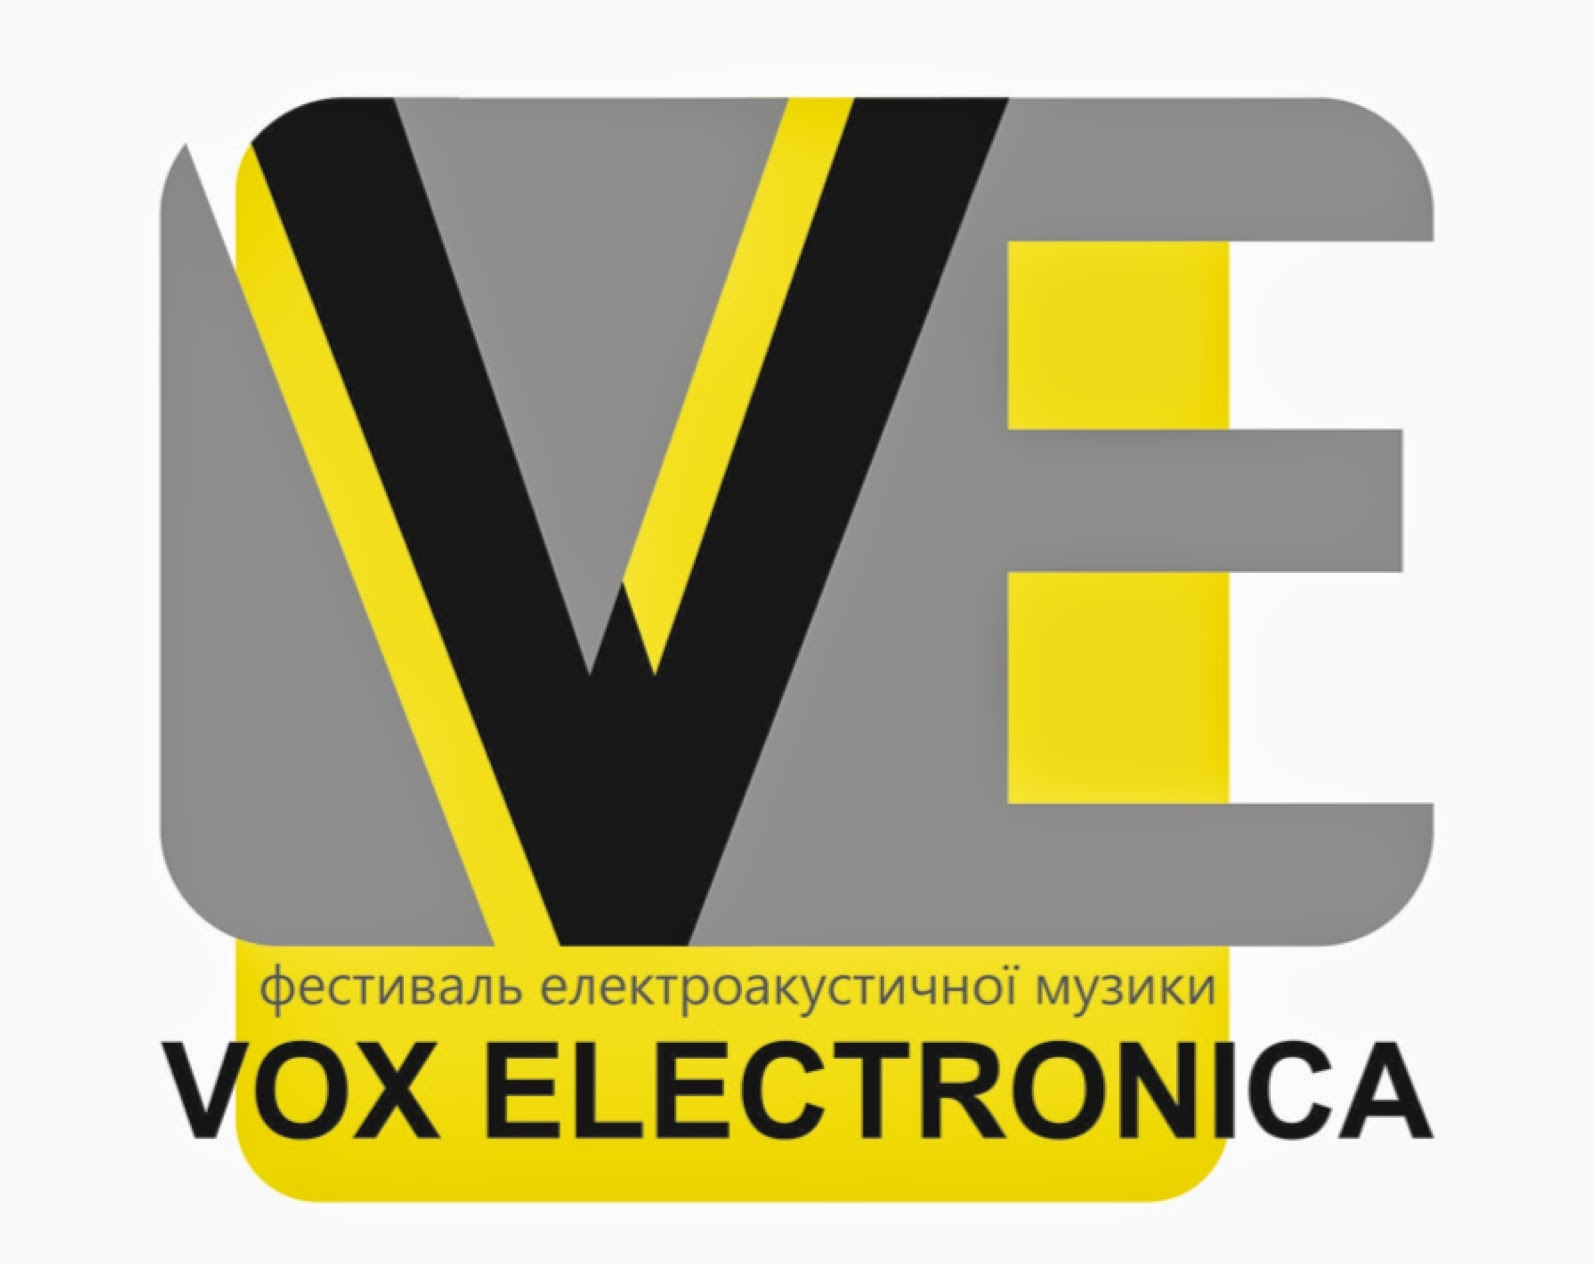 VOX ELECTRONICA Festival